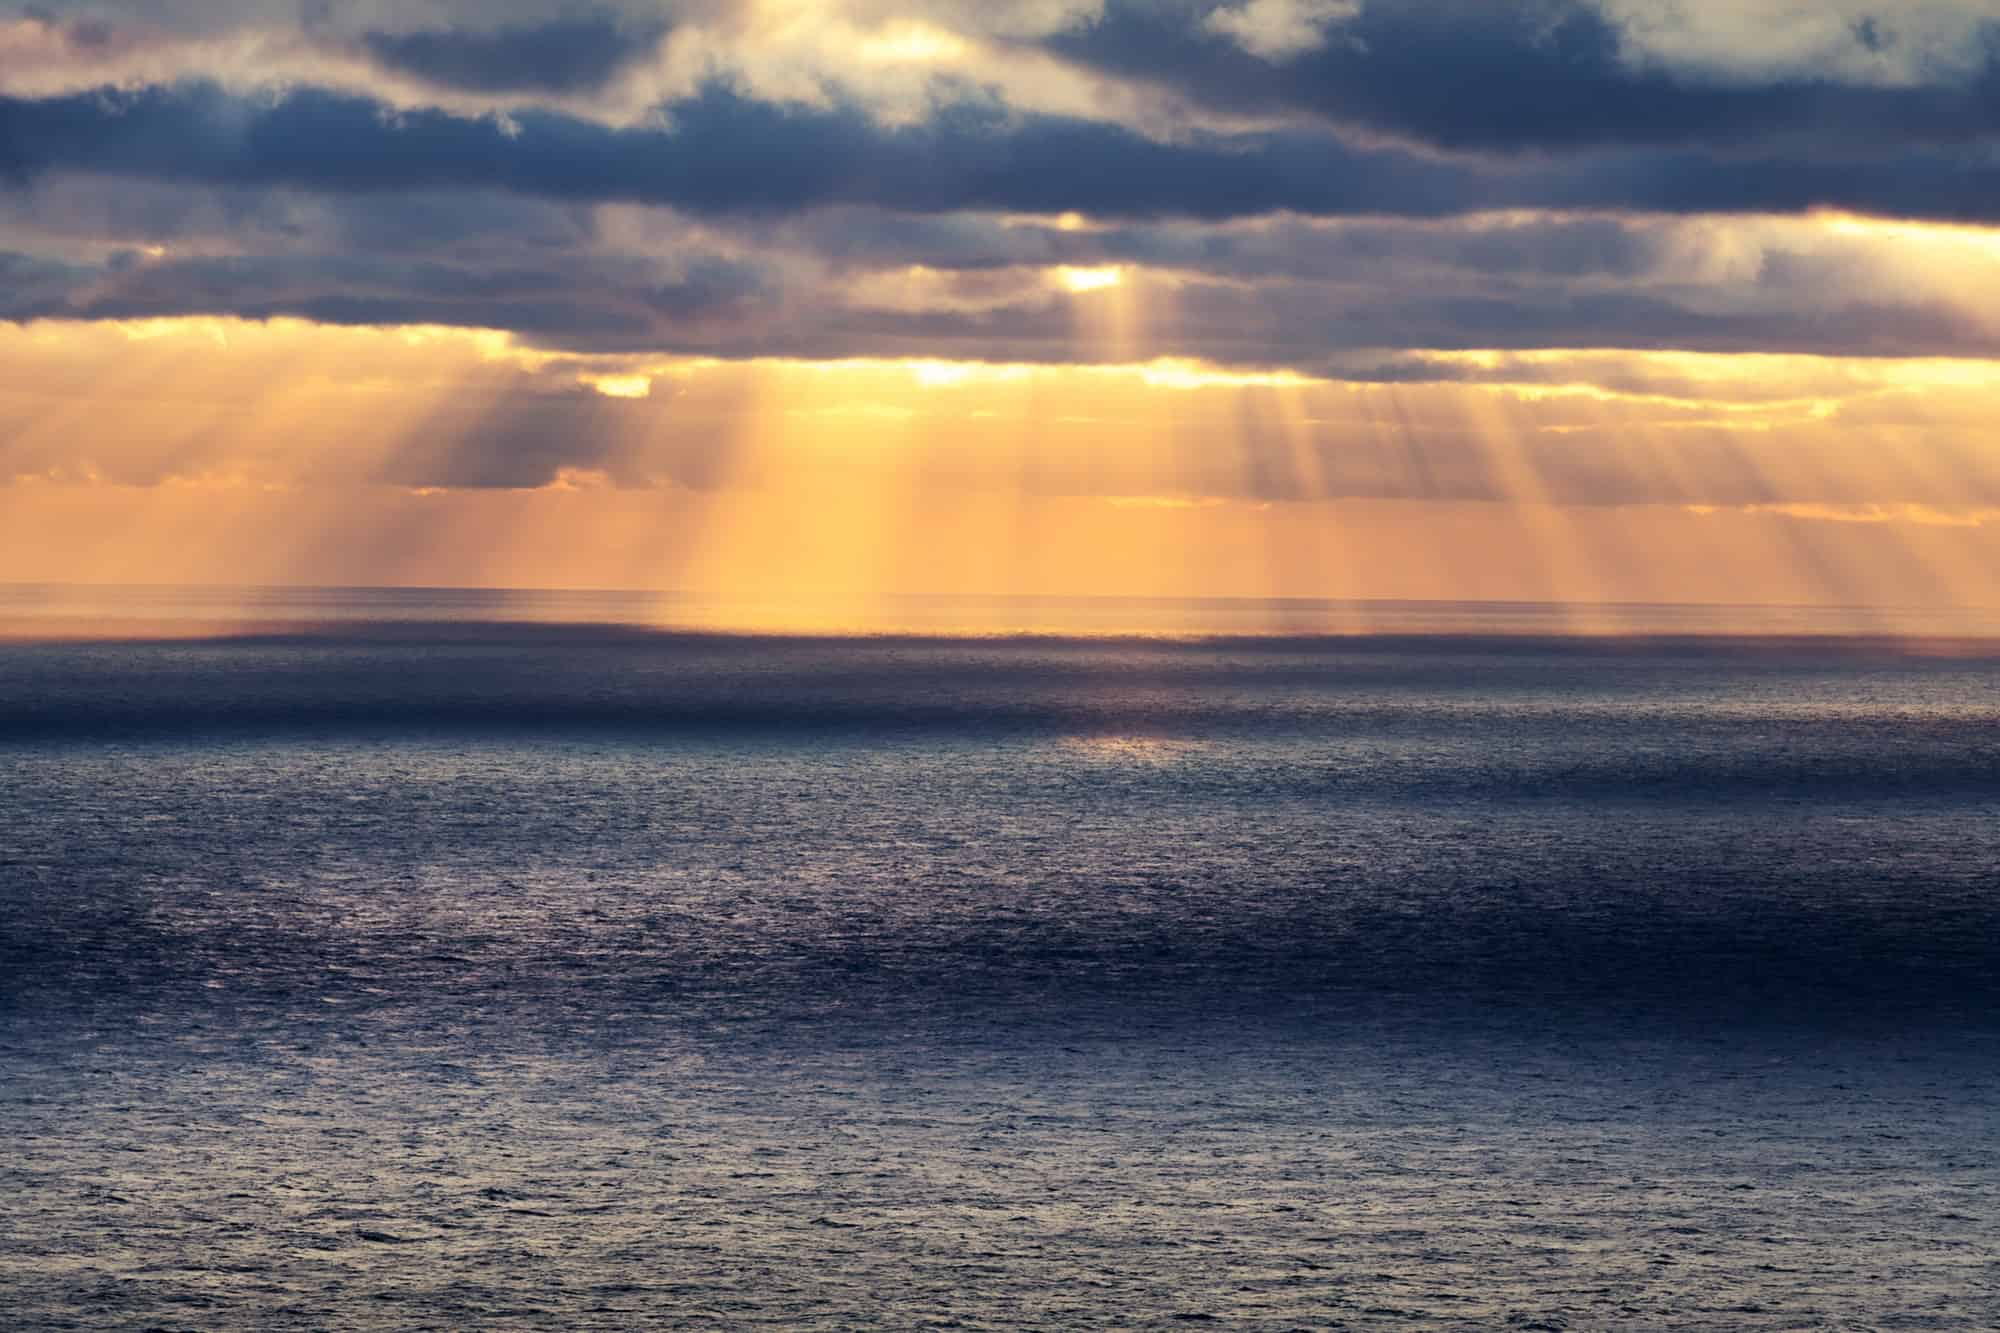 Sunset in the ocean with glowing sun rays